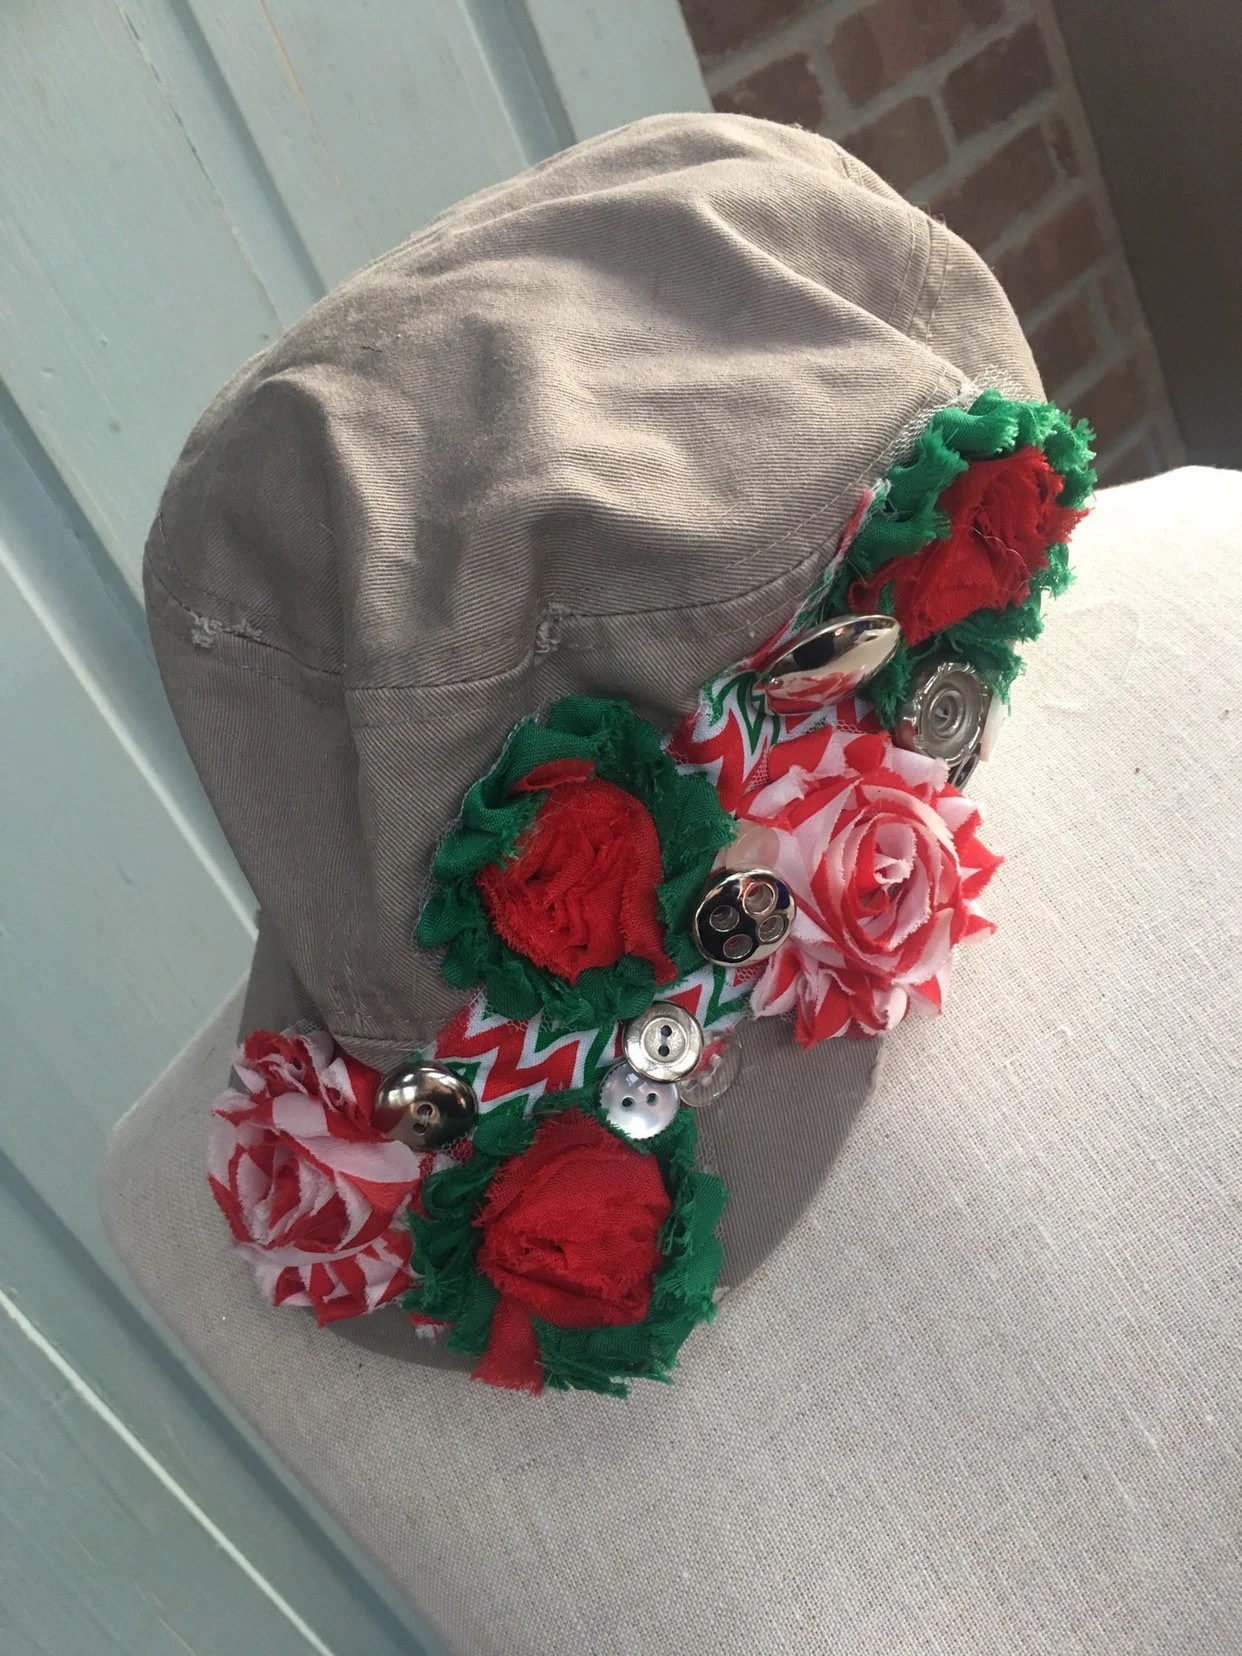 Bad Shabby Chic Shabby Chic Embellished Hat Baseball Cap Shabby Chic Great For Bad Hair Days